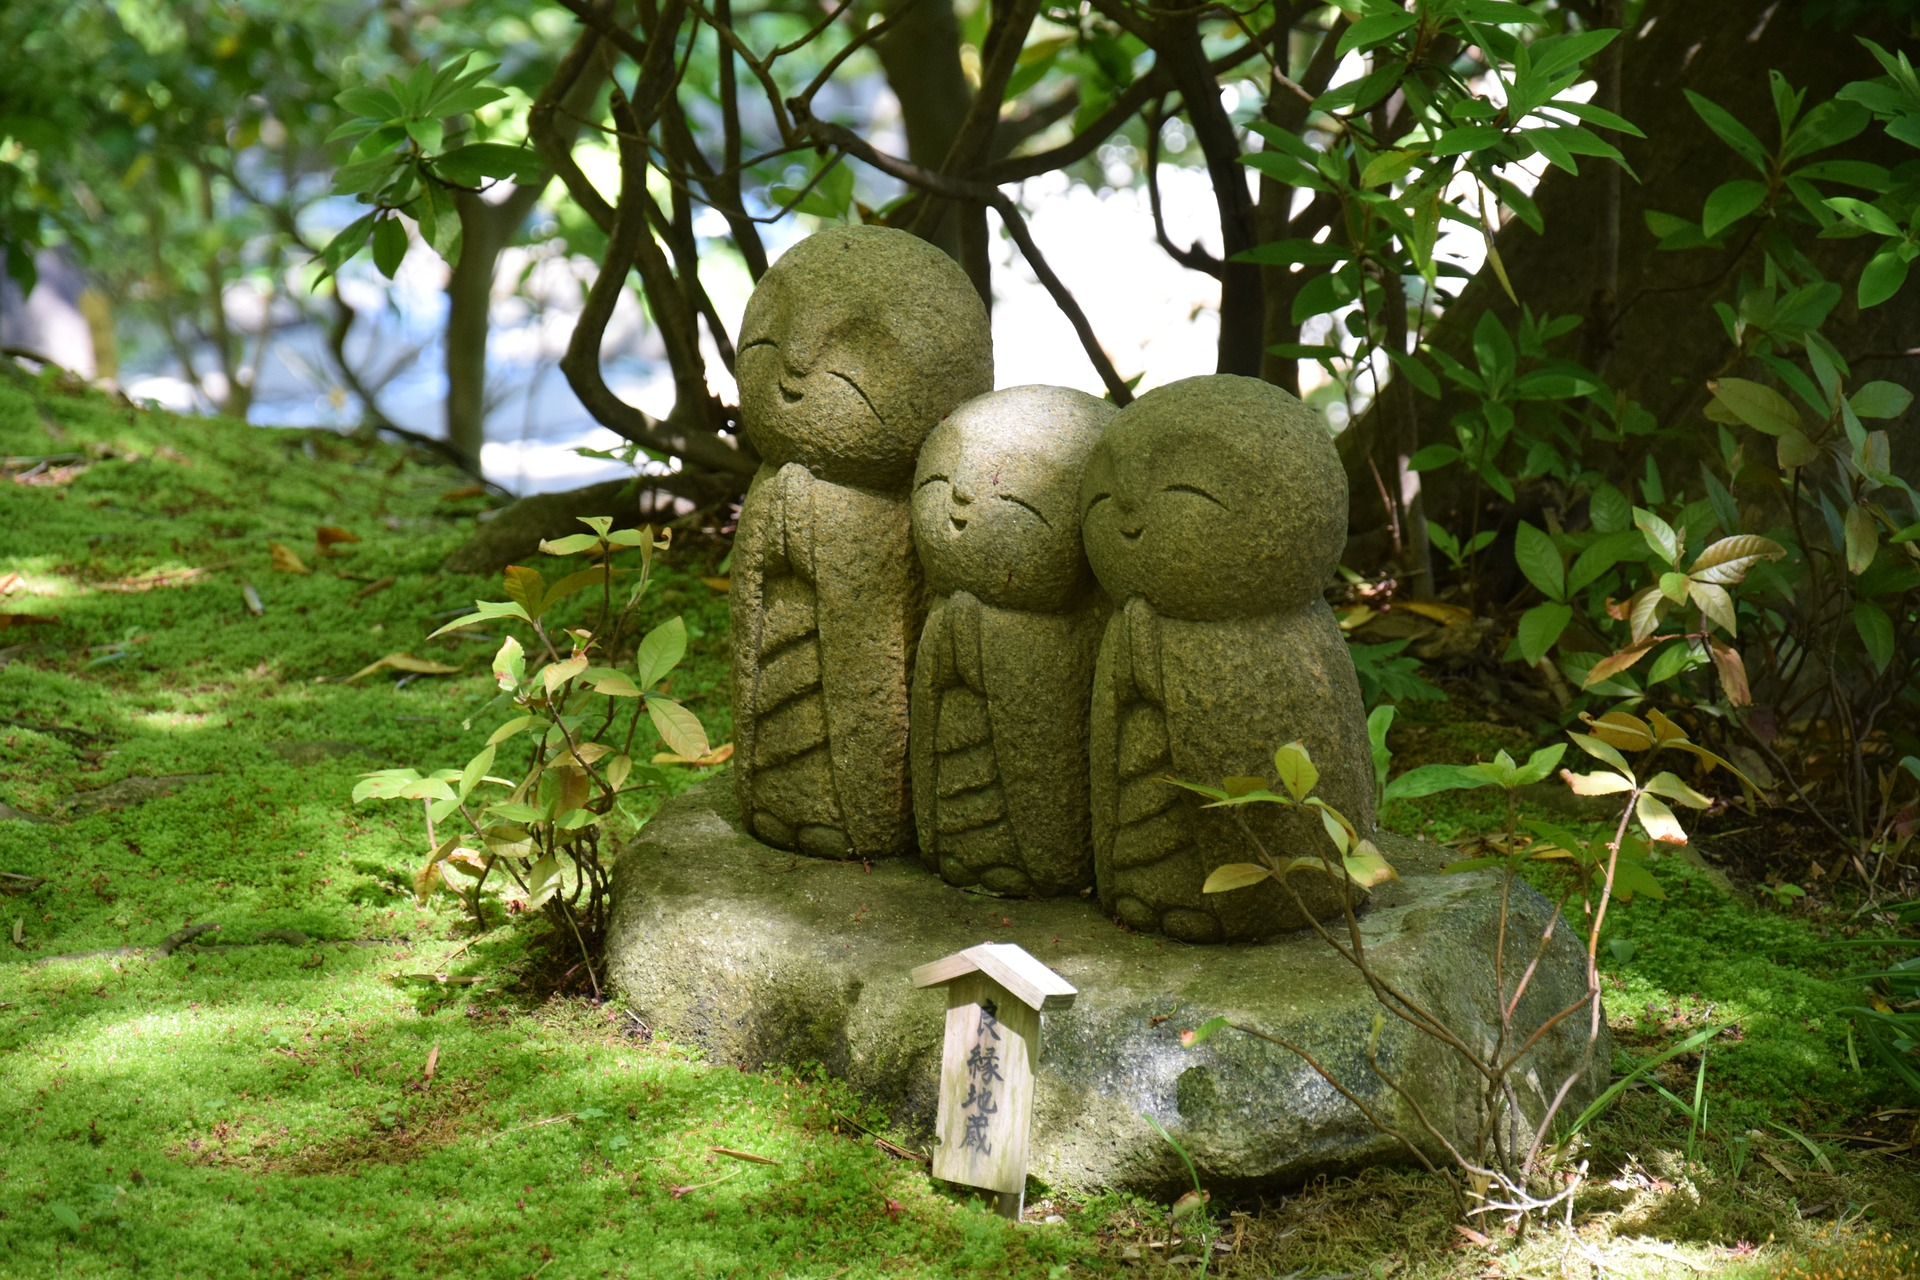 Three sculpted figures of fairies in the garden.